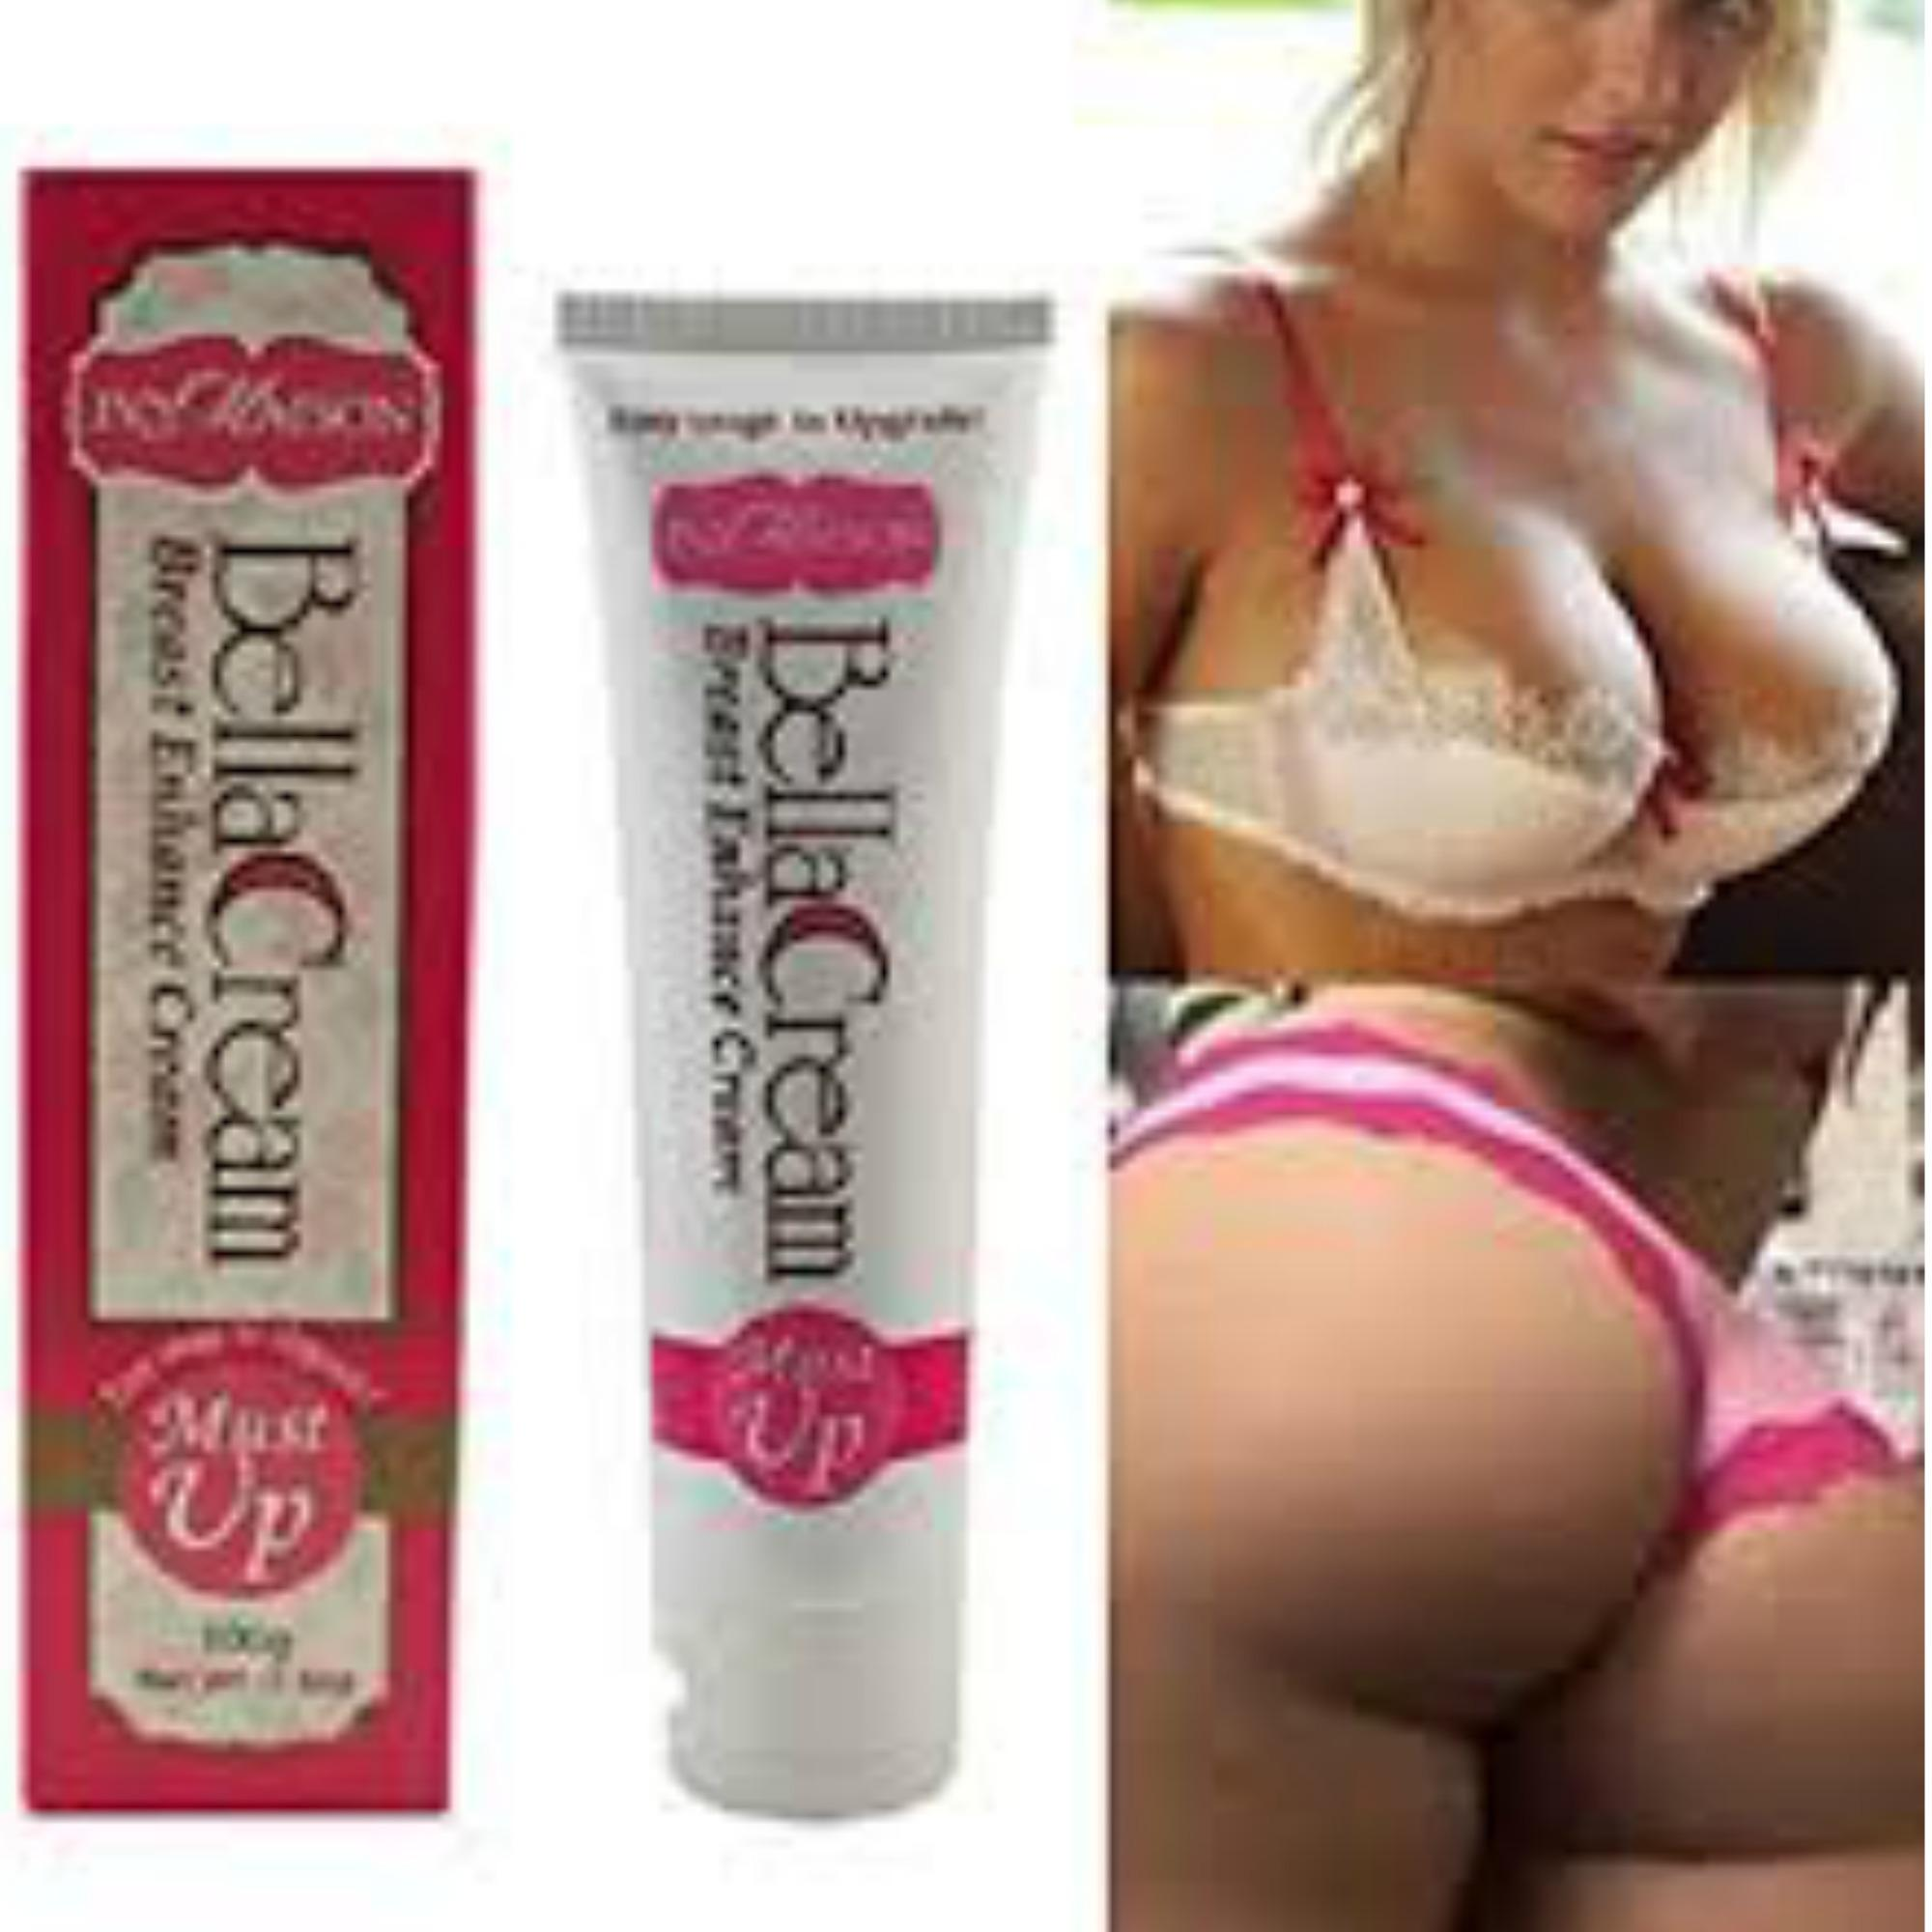 Breast Body Care Brands Bath On Sale Prices Set Vienna Cream Authentic Bella Enhancement 100g